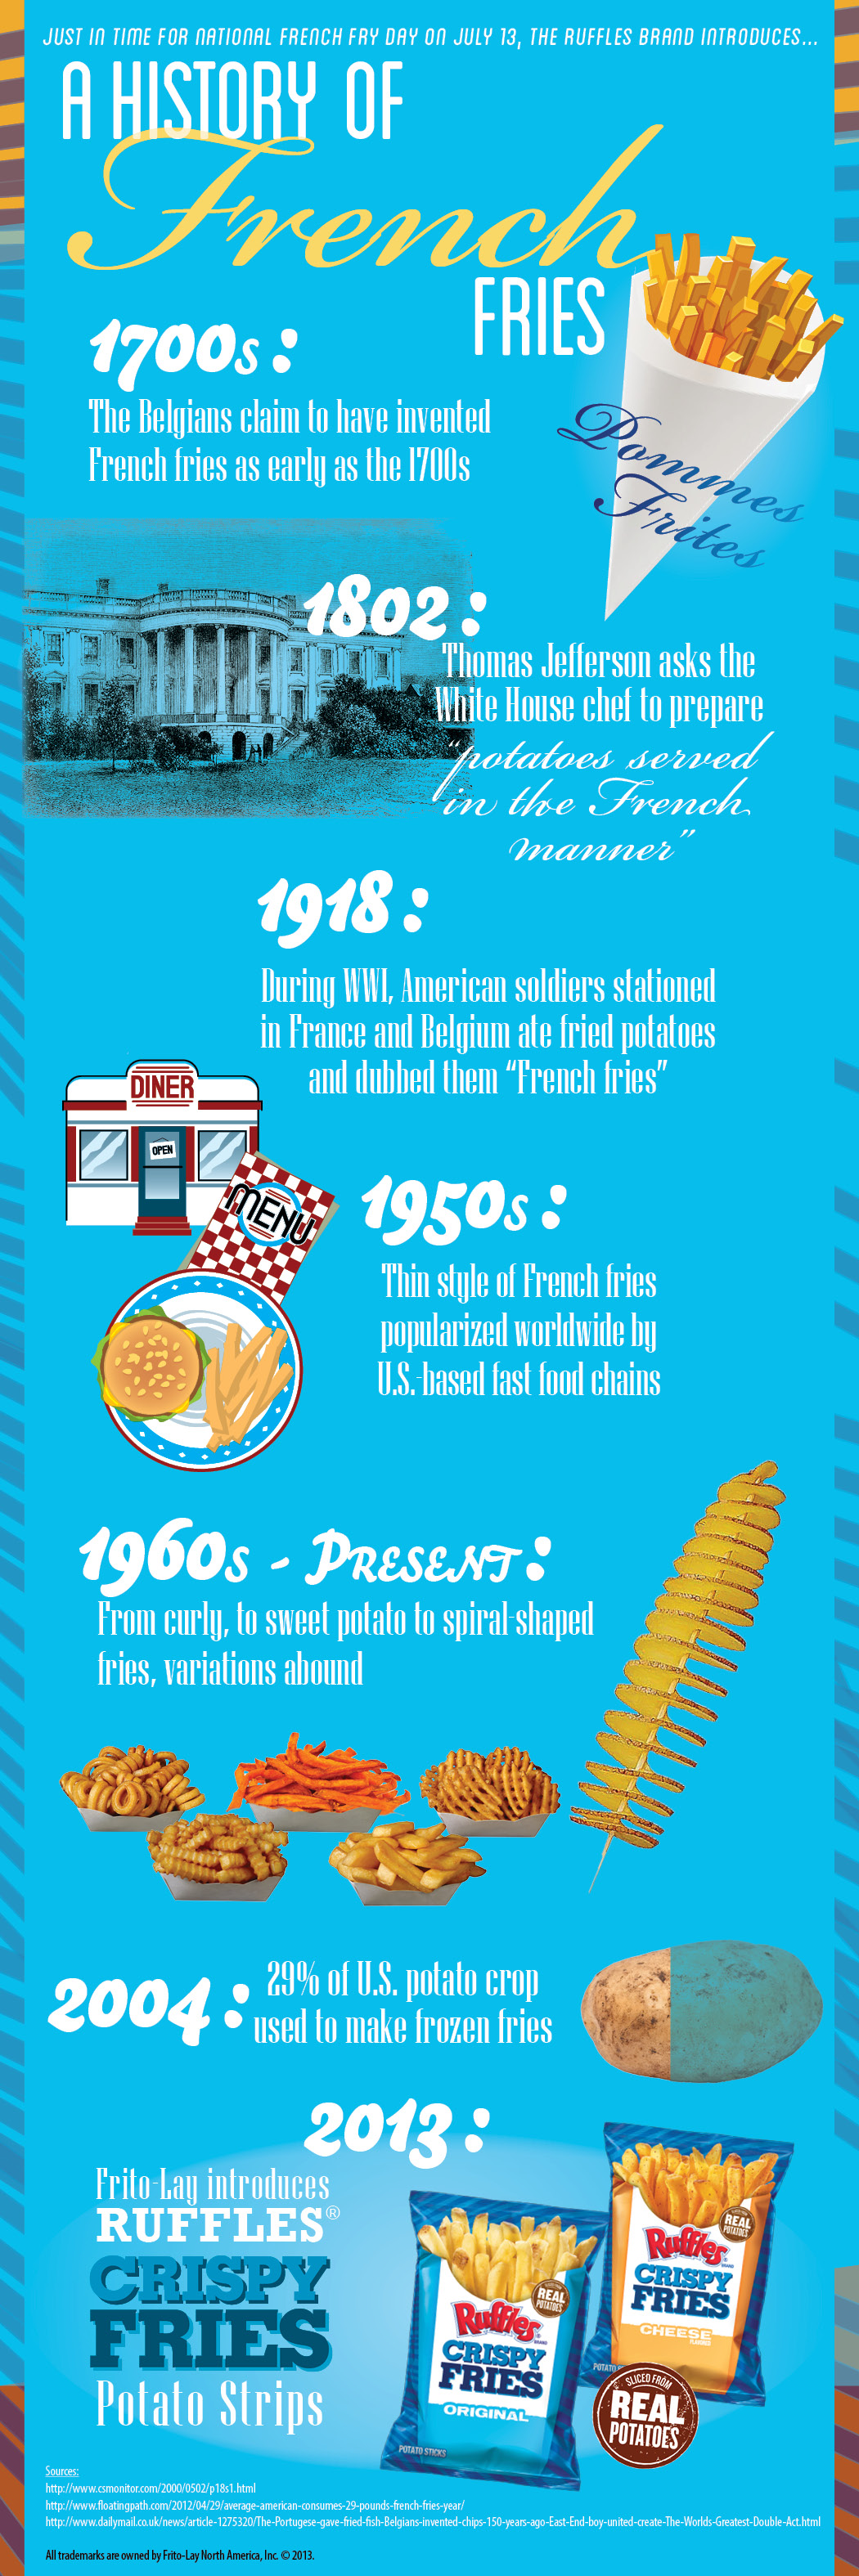 Different Architectural Styles Exterior House Designs: A History Of French Fries {Infographic}